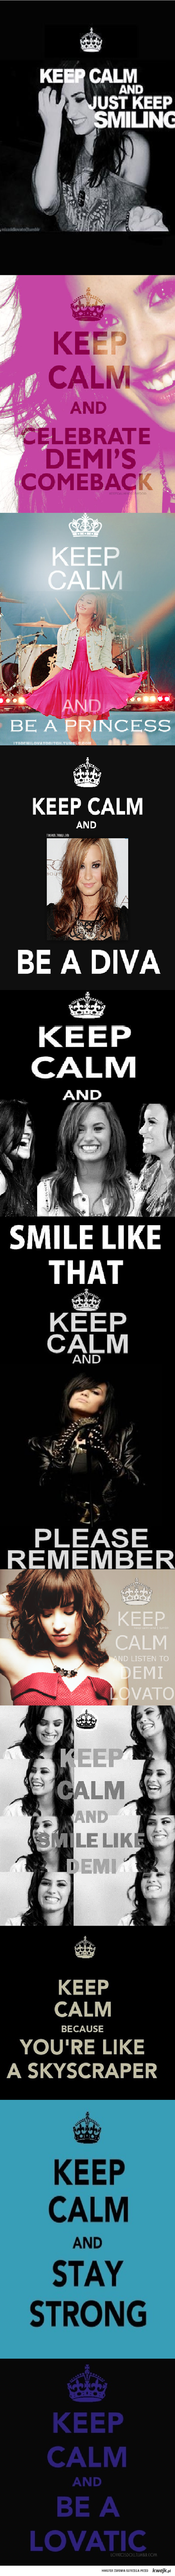 Keep Calm and Be A Lovatic <3